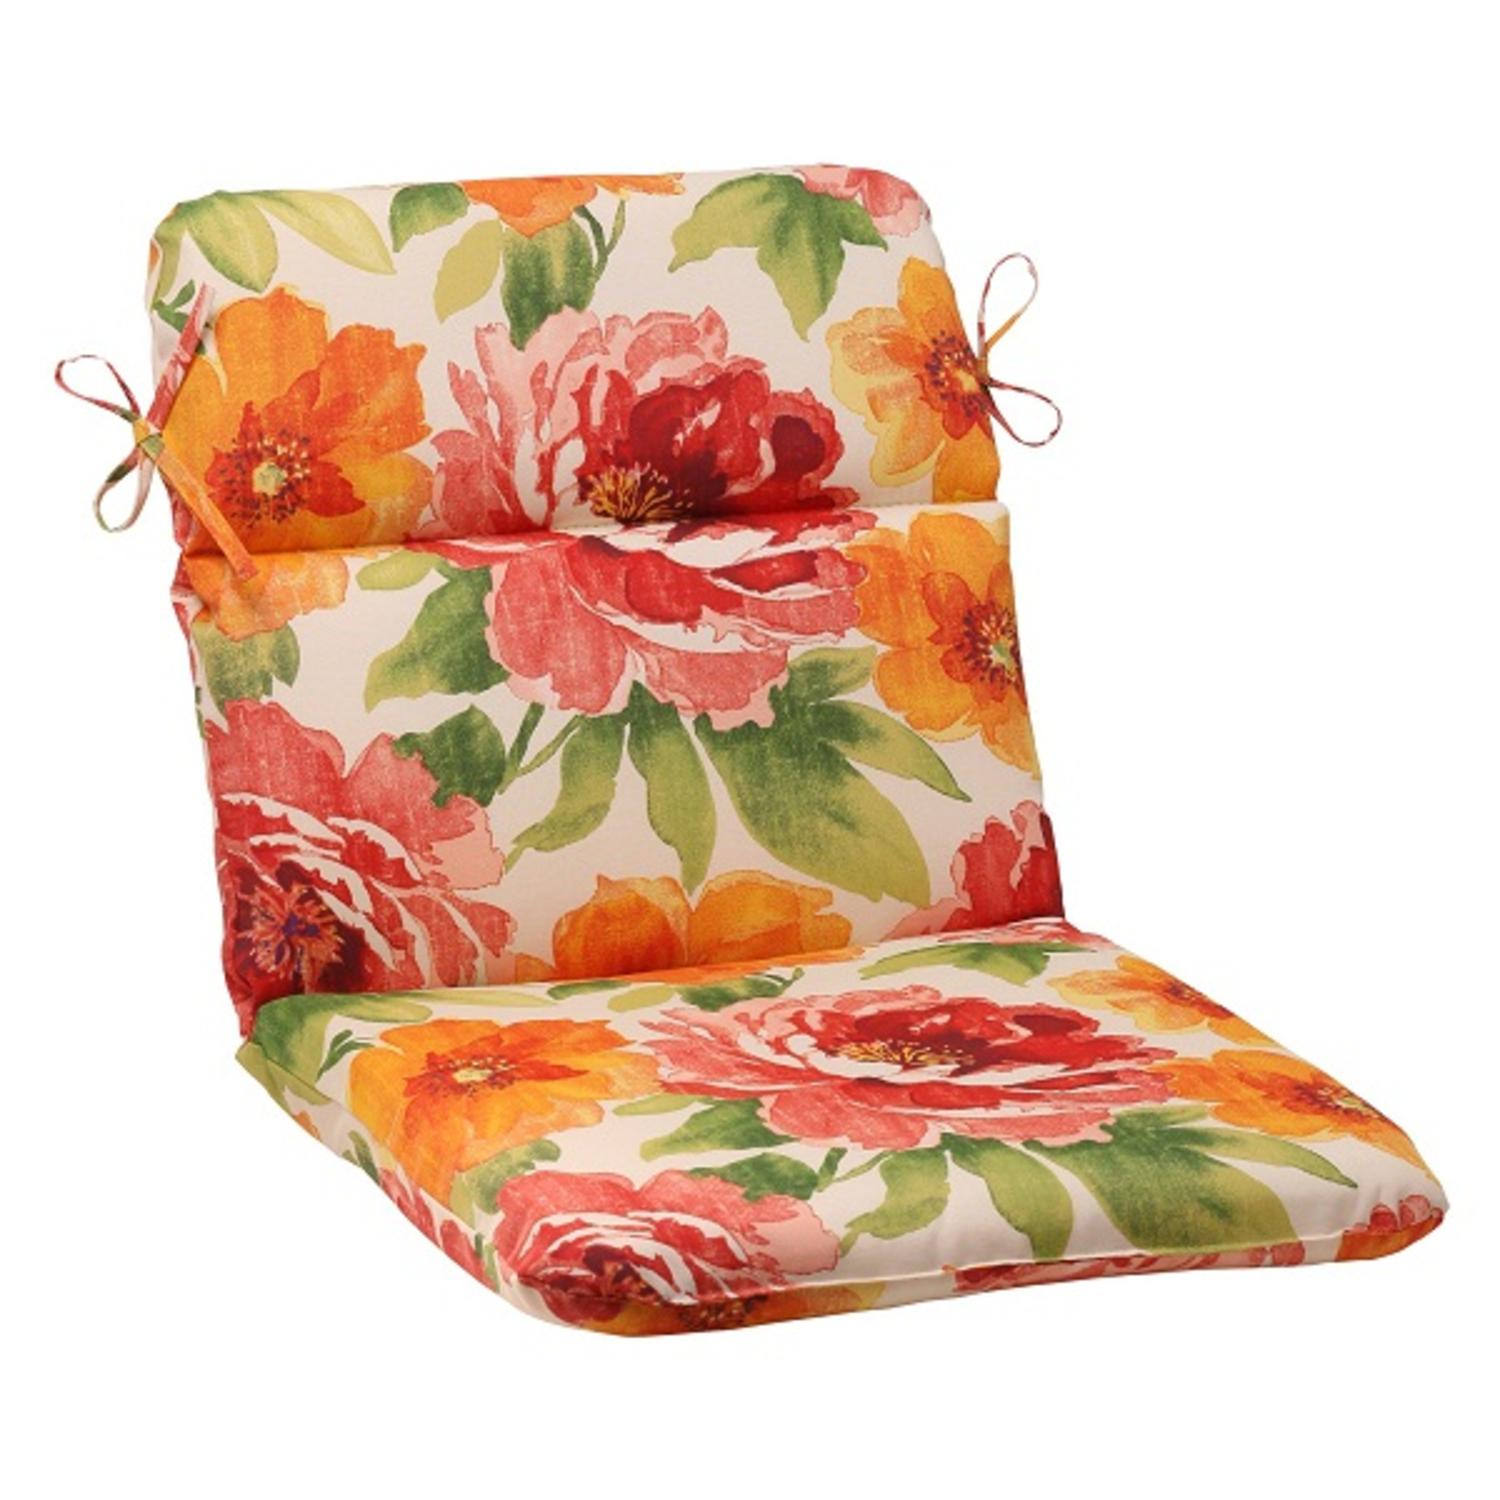 """40.5"""" White Floral Splash Outdoor Patio Rounded Chair Cushion with Ties by CC Outdoor Living"""